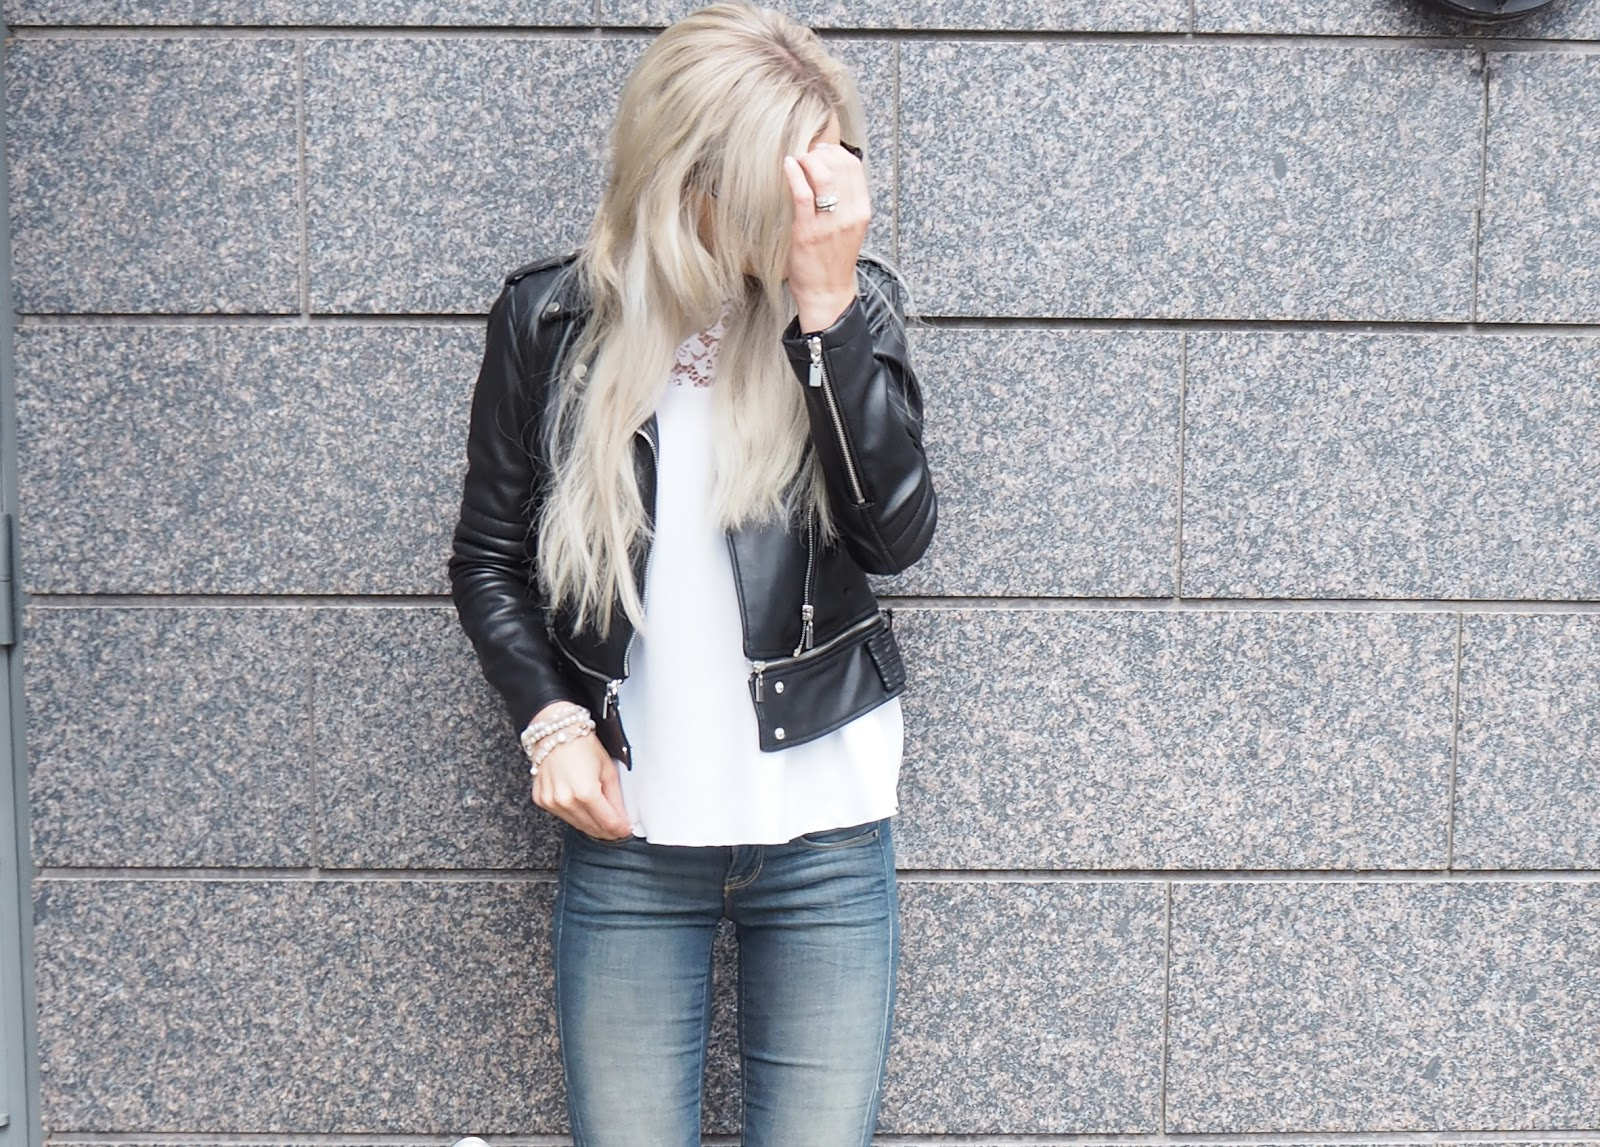 Biker jacket and lace outfit